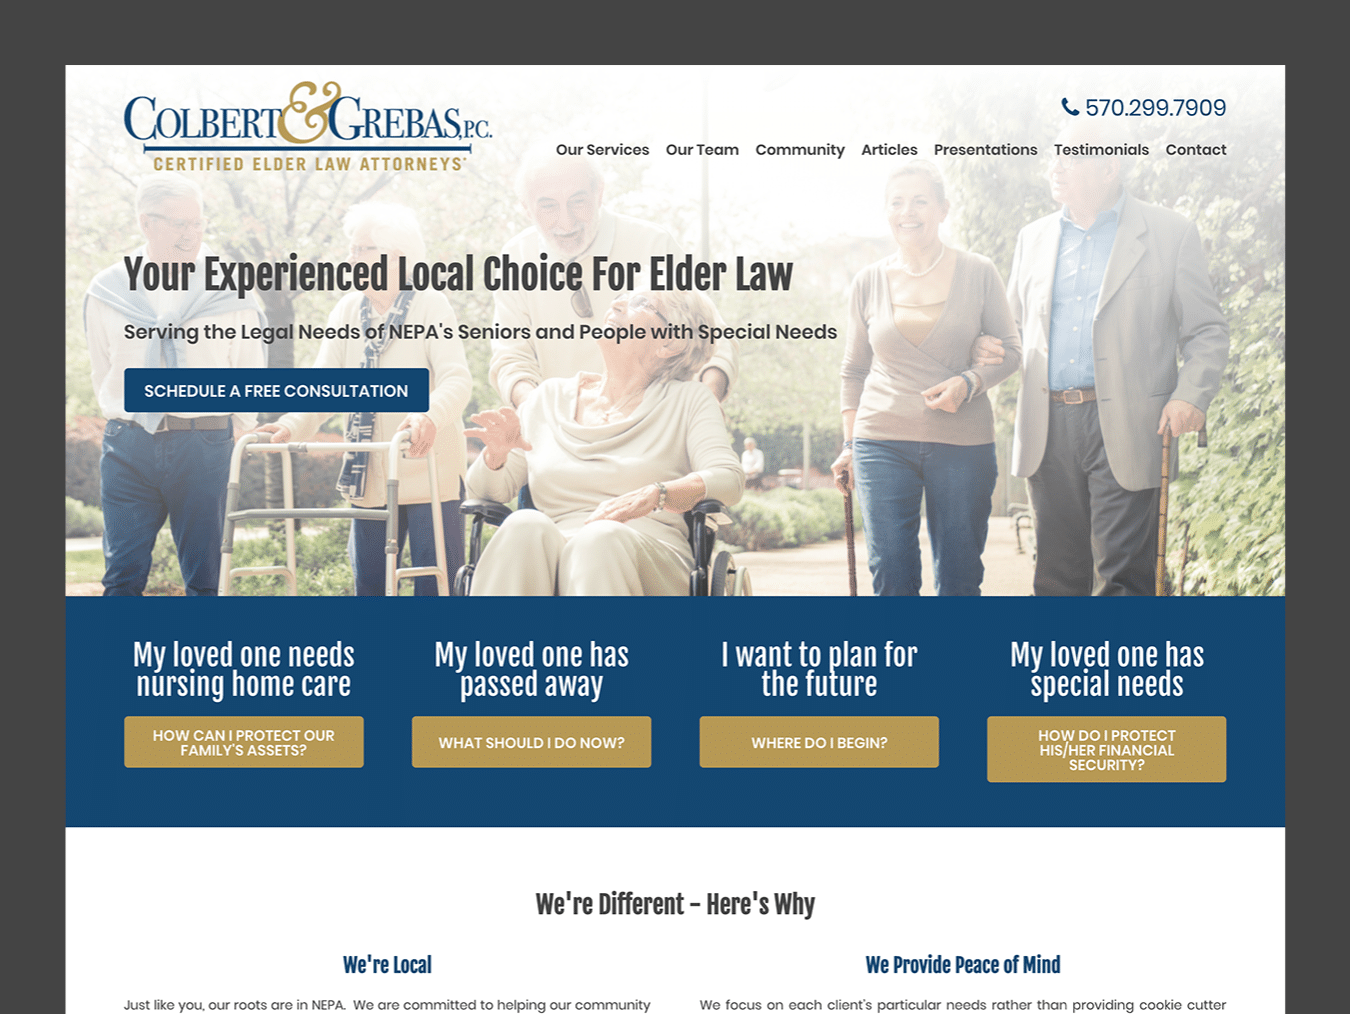 Law Firm Web Design – Colbert & Grebas (Thumbnail Design)